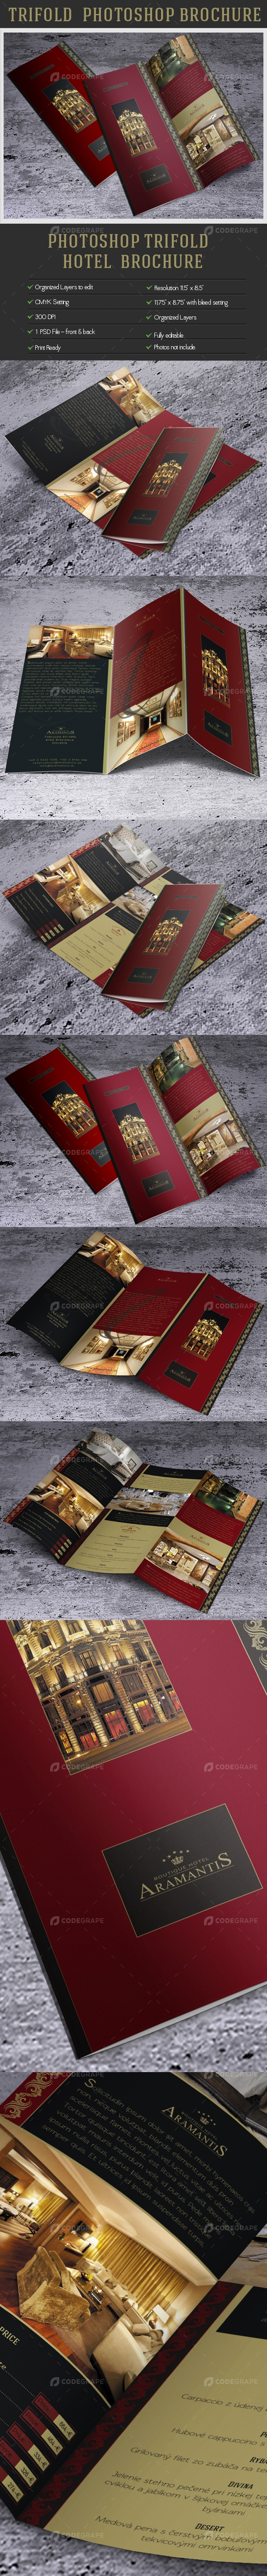 Creative Photoshop Template TriFold Brochure